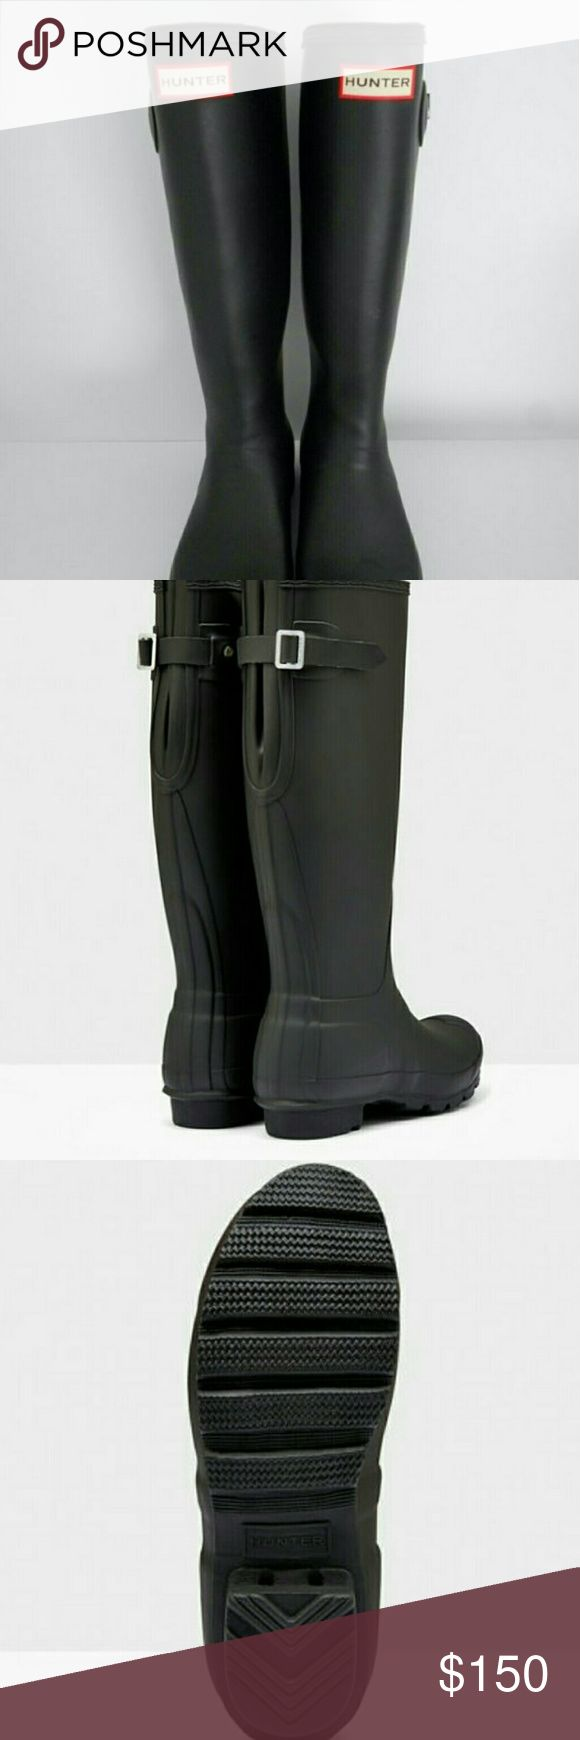 100%Auth Hunter Tall Black Matte Rain Boots Boots & 2 pairs of Hunter Socks!  Adjustable Rain Boot is made from natural rubber in a matte. It features a buckle at the back to adjust fit. Handcrafted Waterproof Textile lining Adjustable strap at back enhance fit Natural rubber And comes with 2 pairs of 100% Auth Hunter Tall Socks!!!!! I can't use without the boots ! No trades or try on.please factor in your getting 2 pairs of Auth socks from Hunter ! Please factor in heavier shipping costs on…